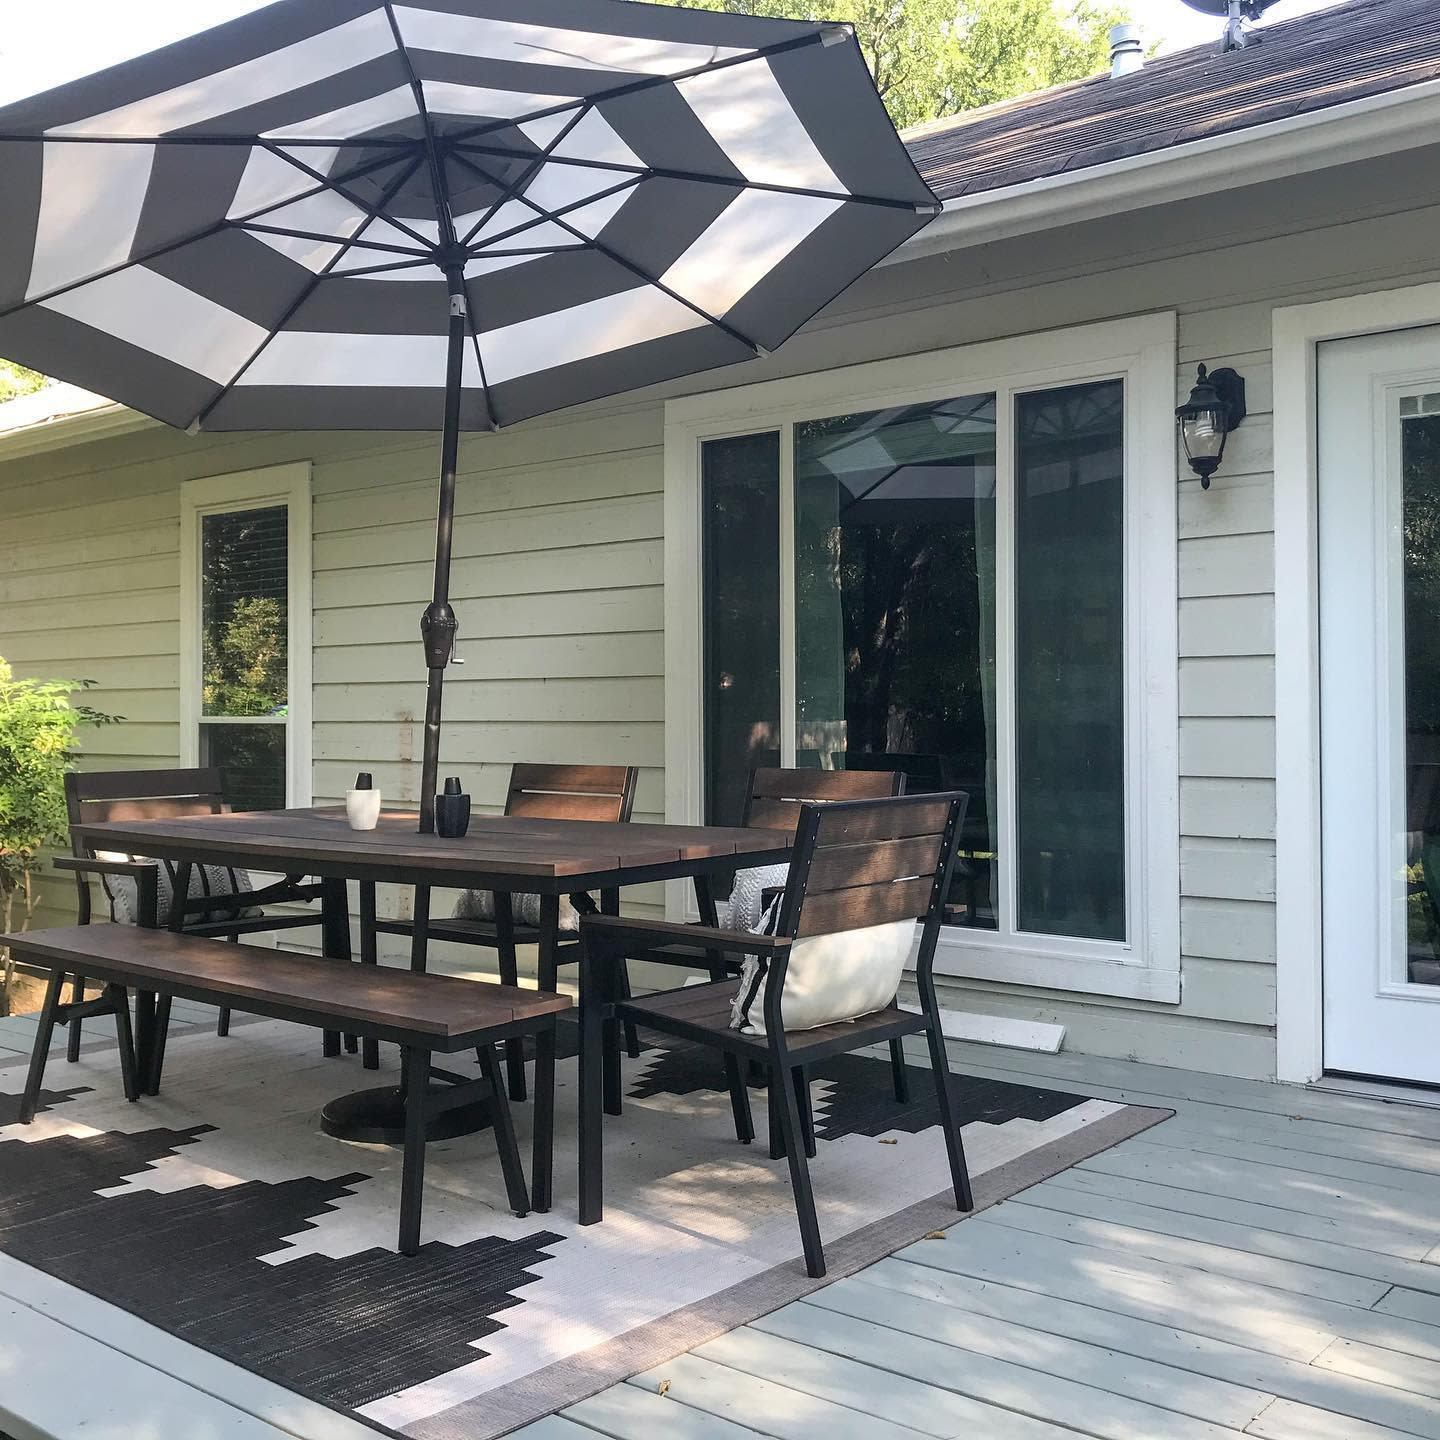 Patio Outdoor Shade Ideas -this1983home